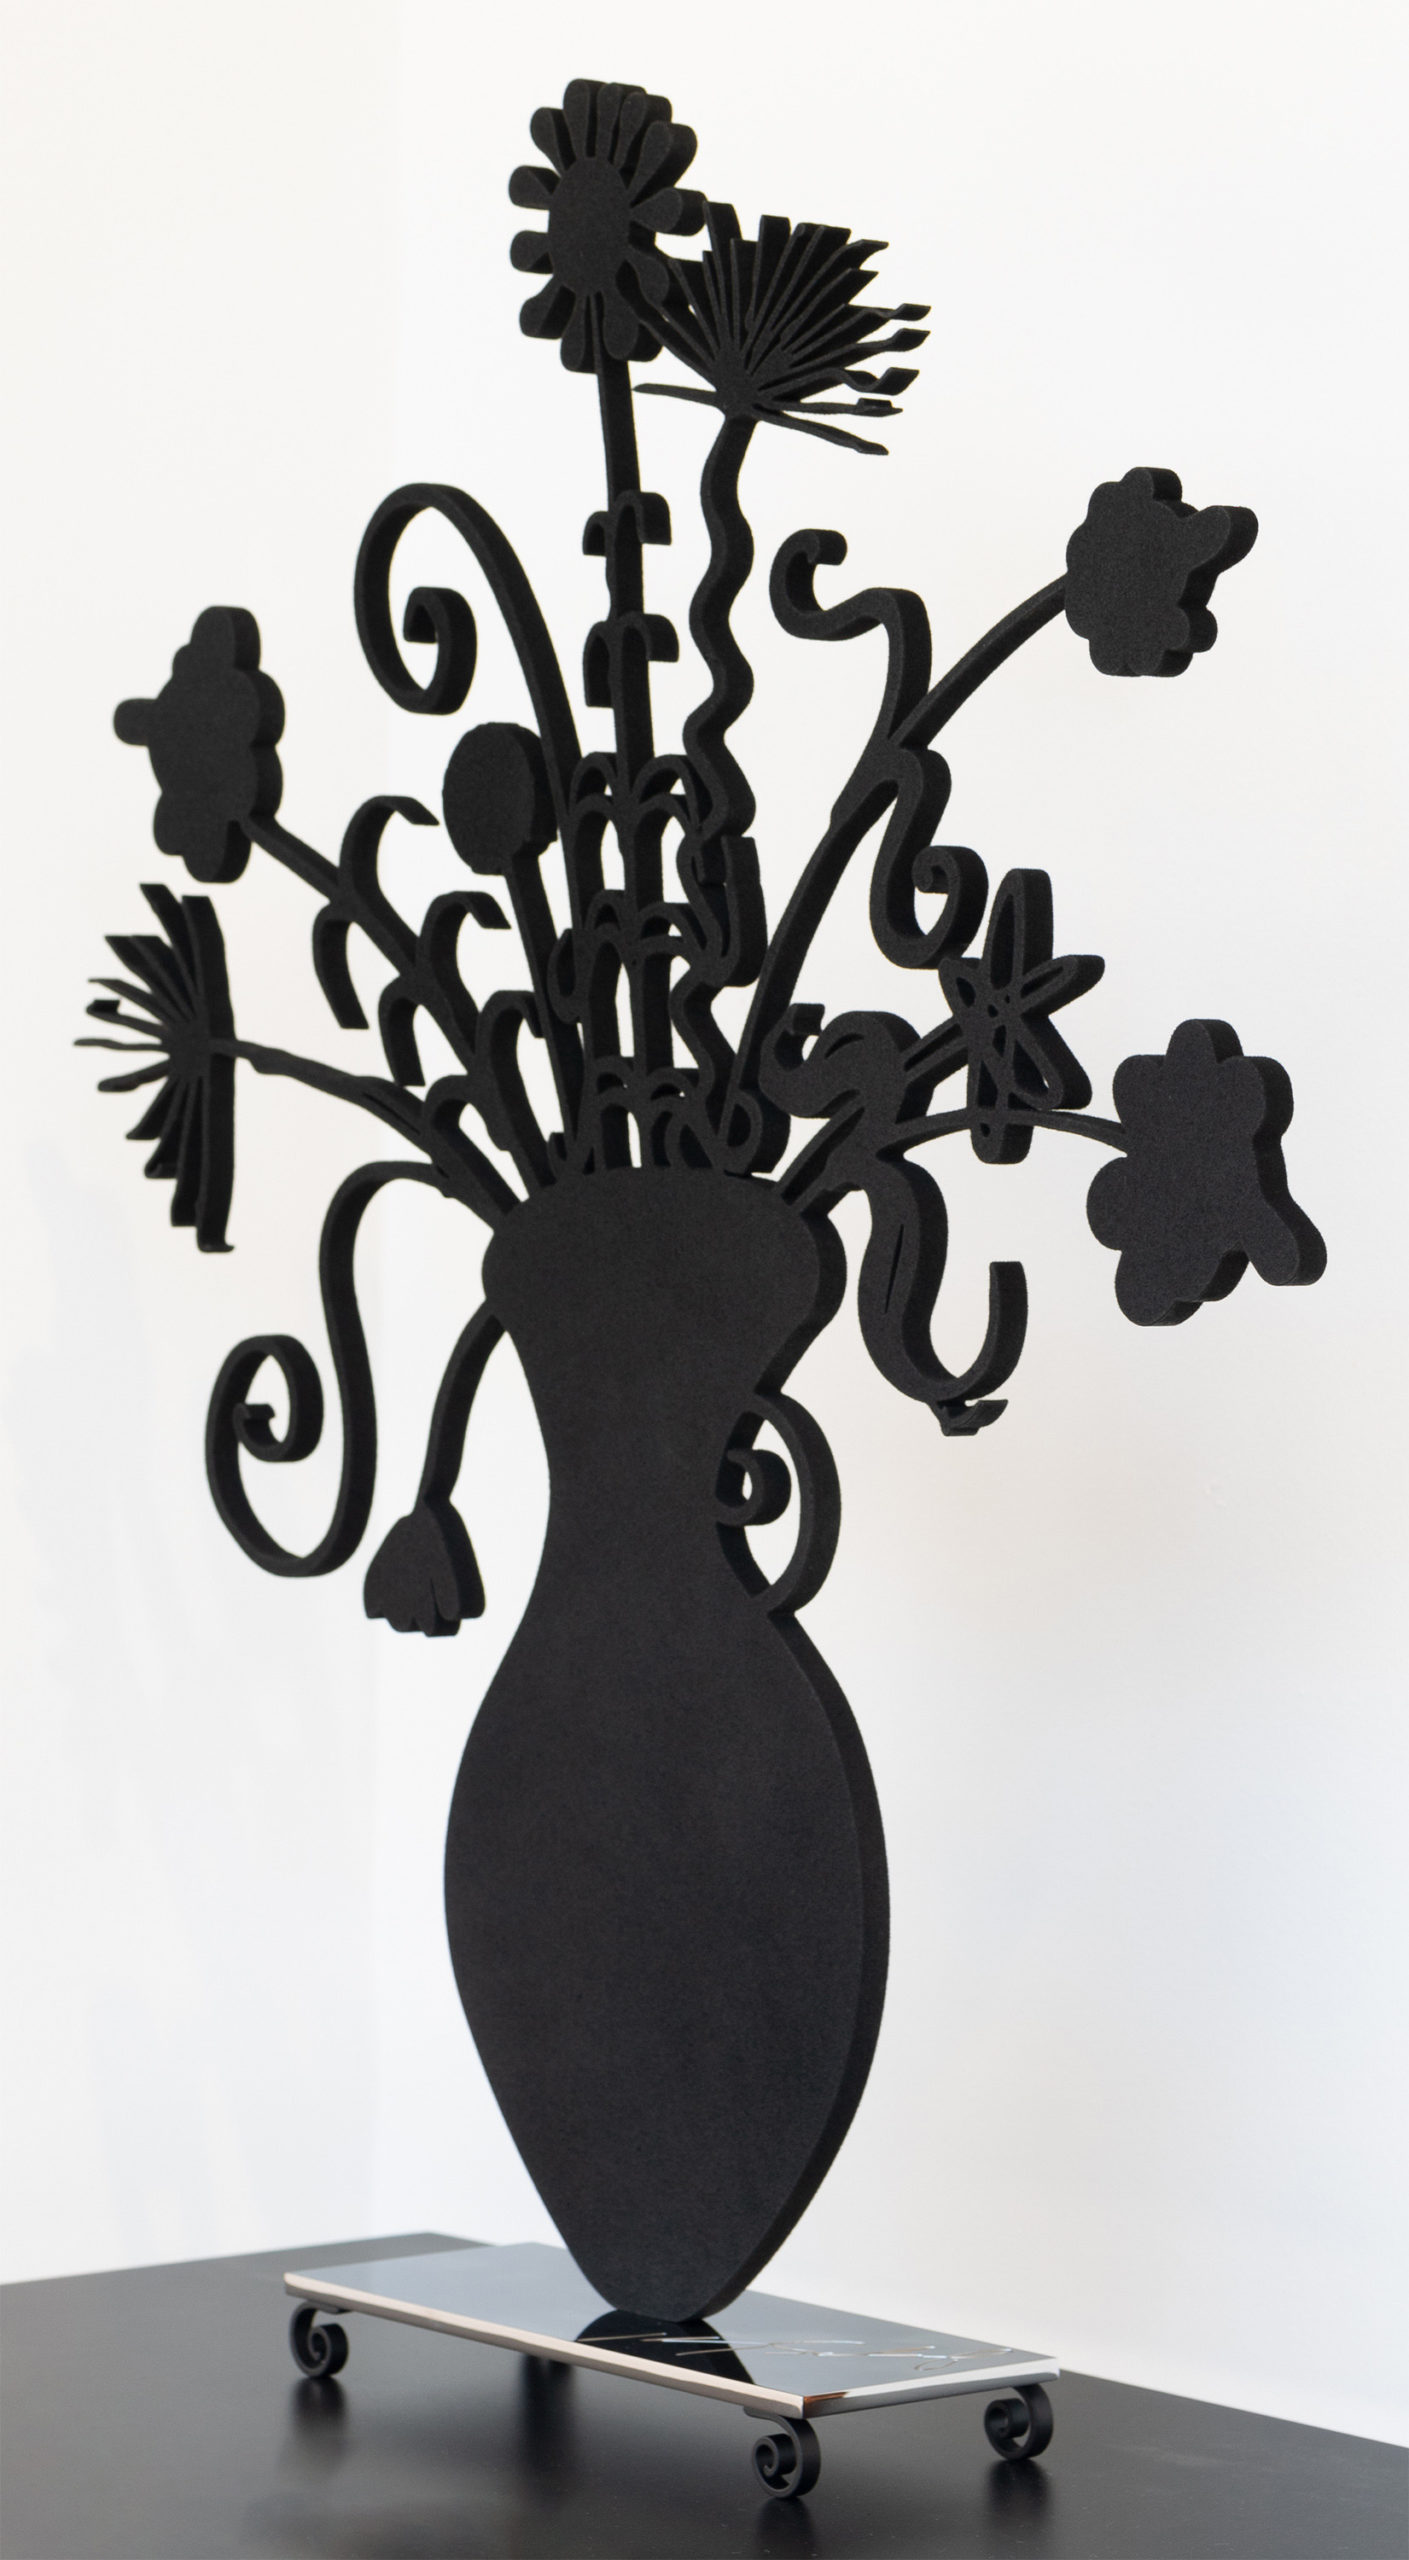 Flores Black by Kenny Scharf, skew